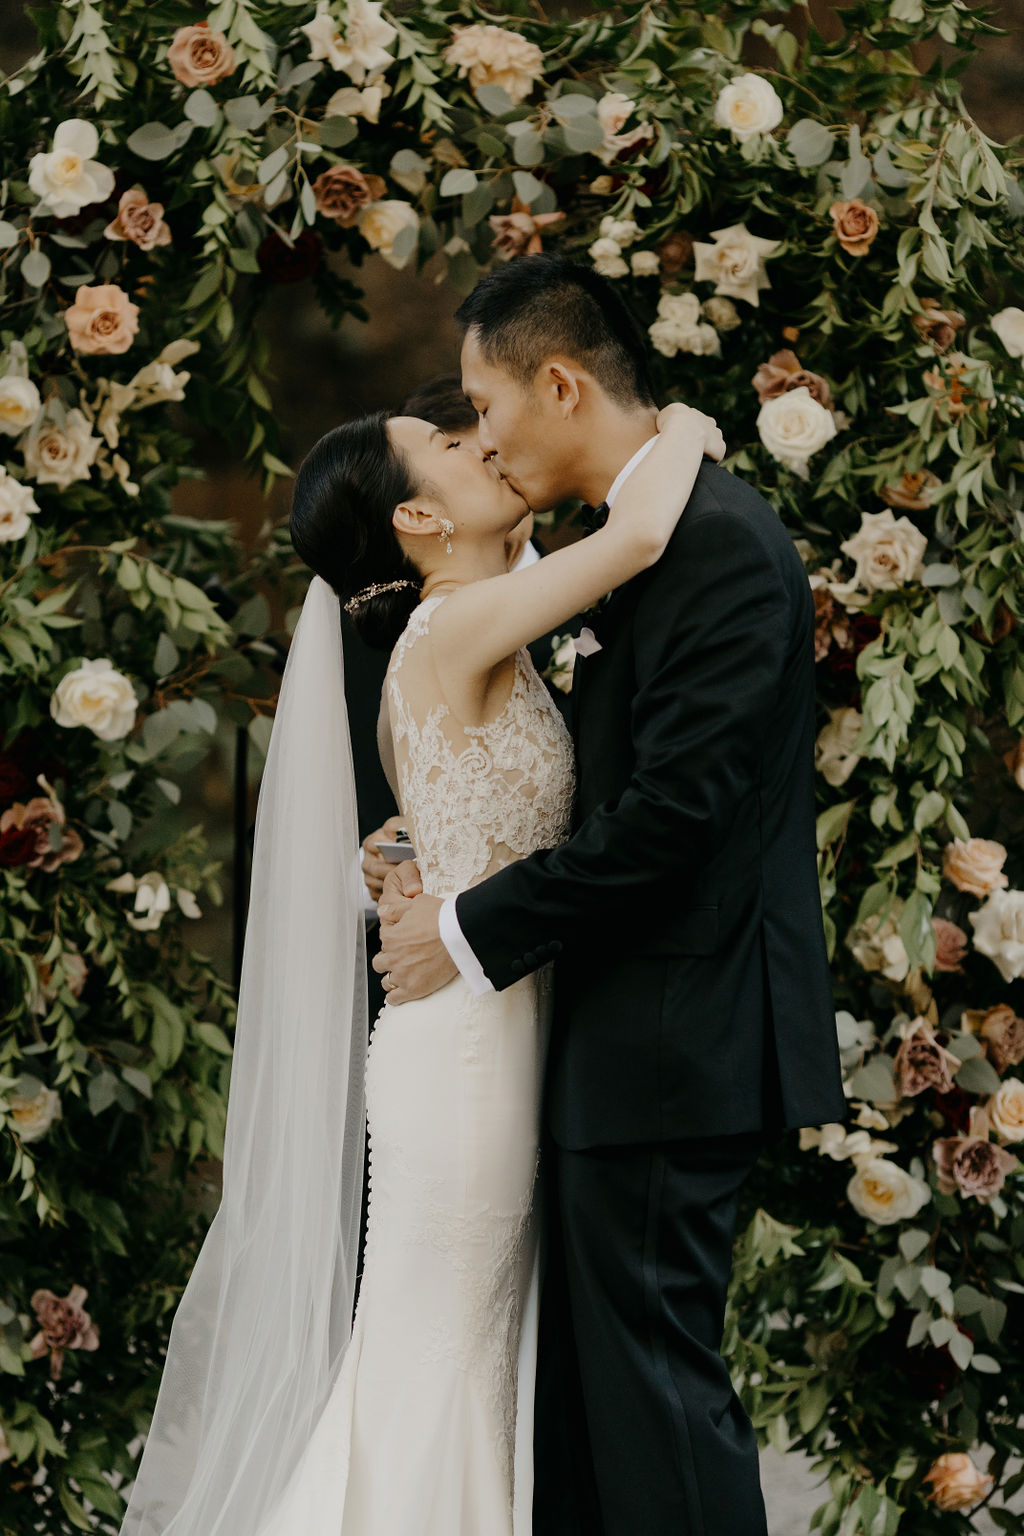 Deer Park Villa Wedding Planner Perfectly Planned Moments Nirav Patel Photography Ceremony Kiss.JPG